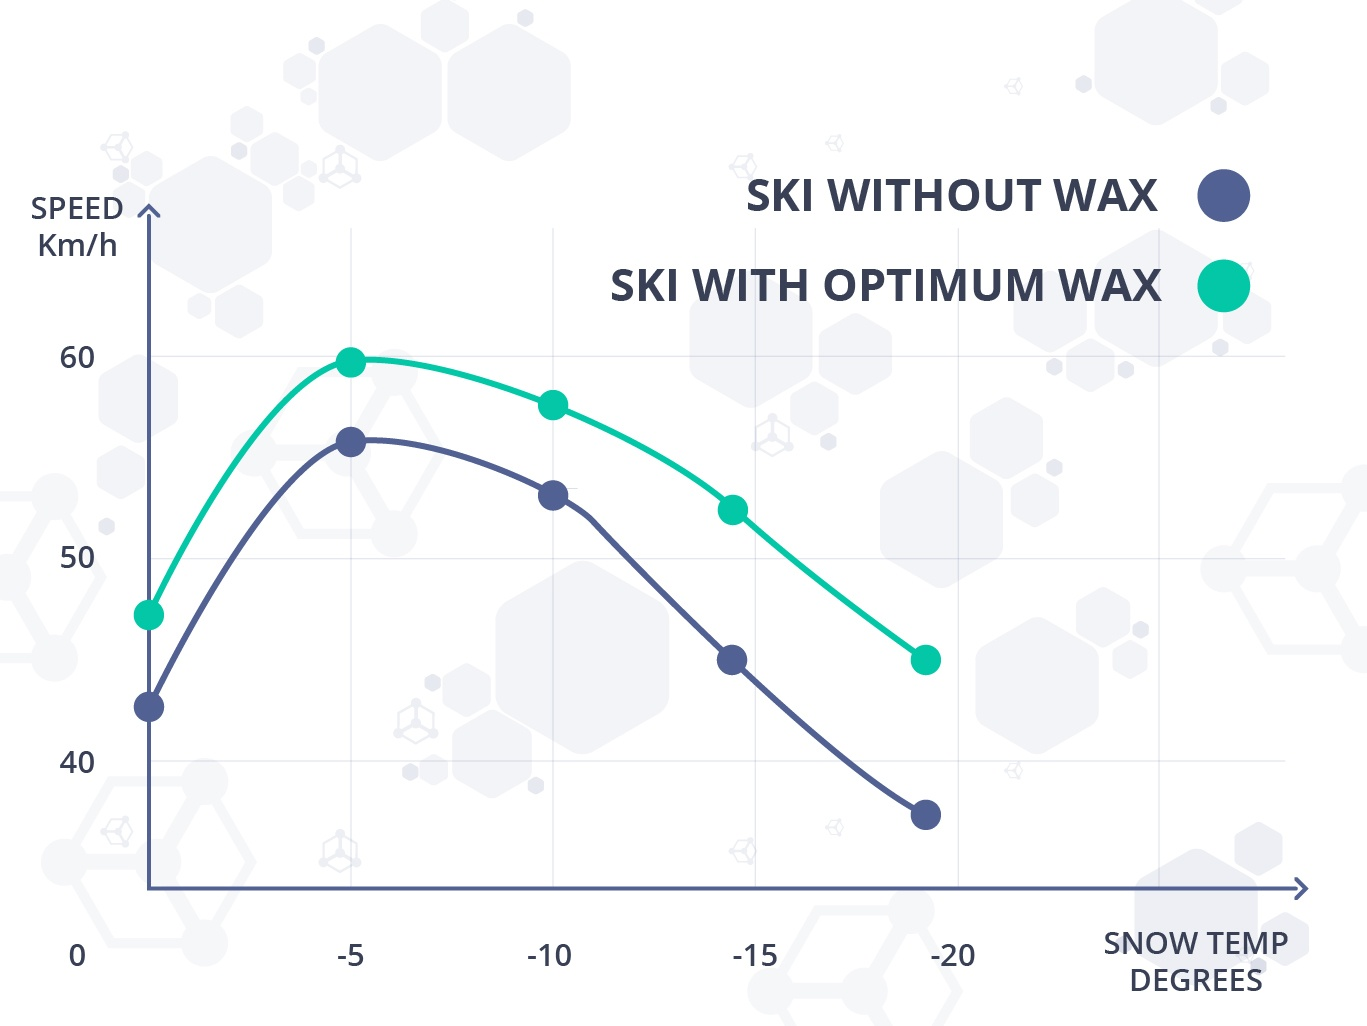 Figure 2. Different gliding speeds depend on the snow temperature and the ski waxing [3].